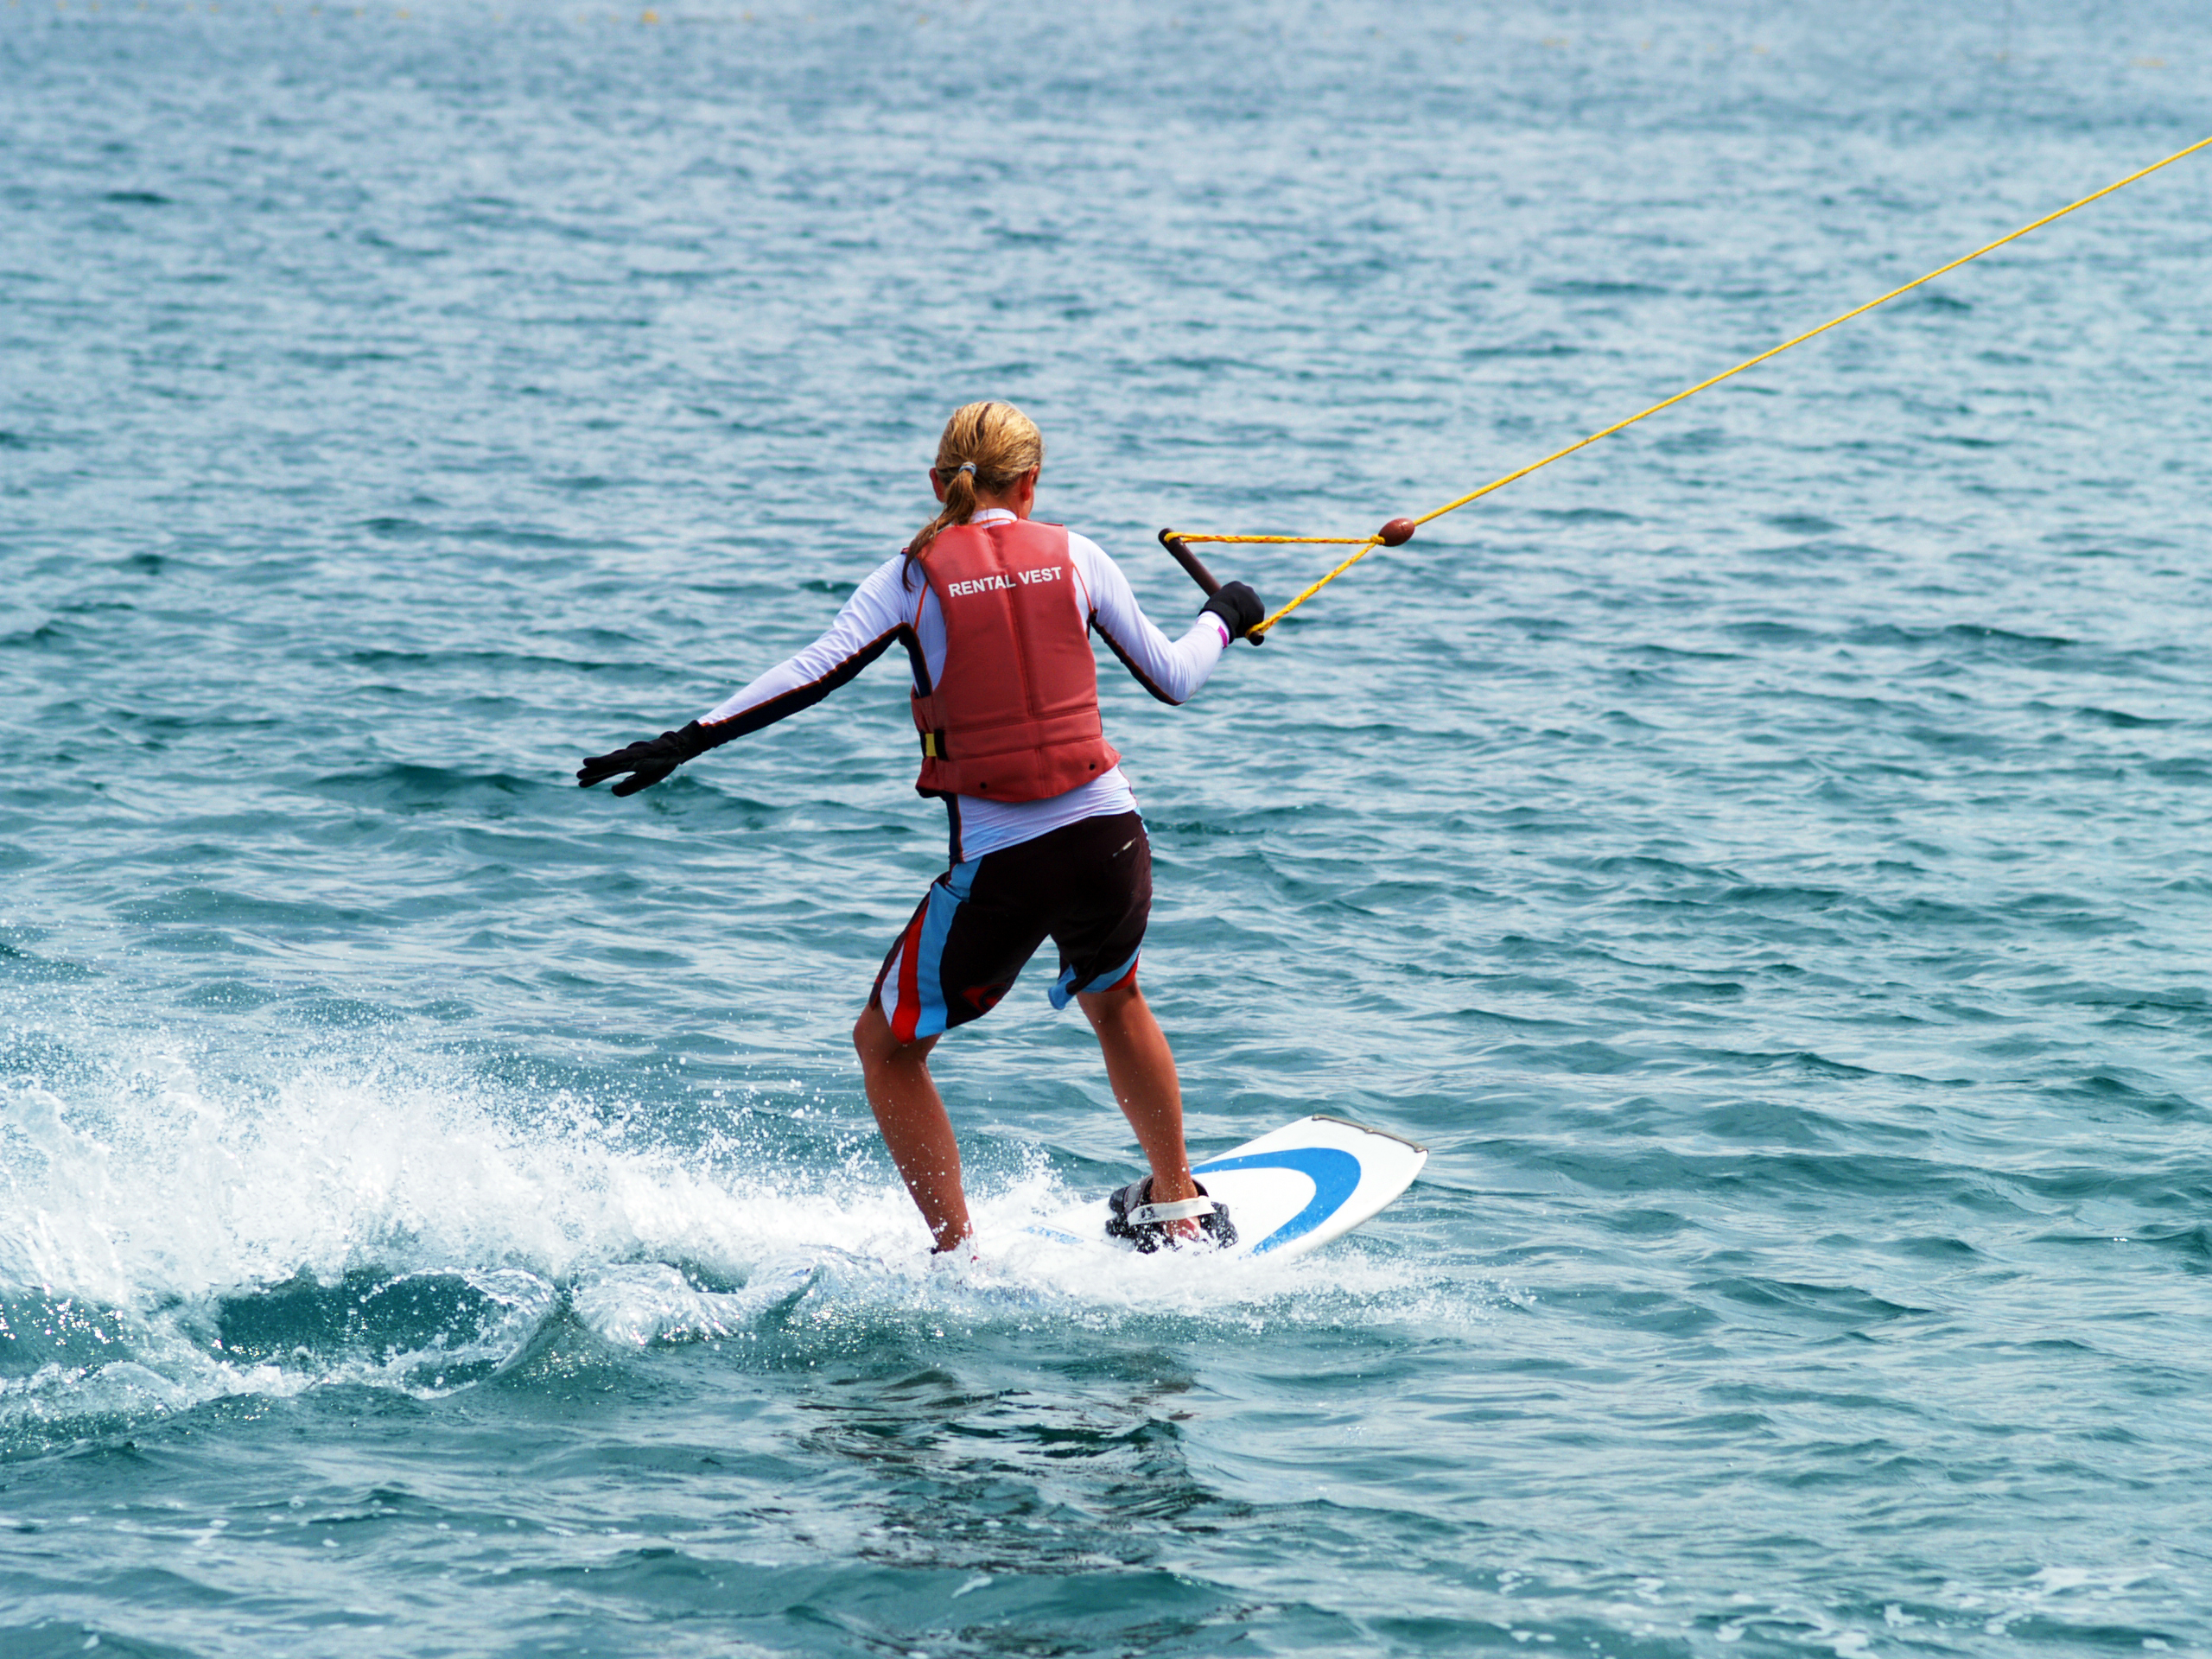 wakeboarder nice